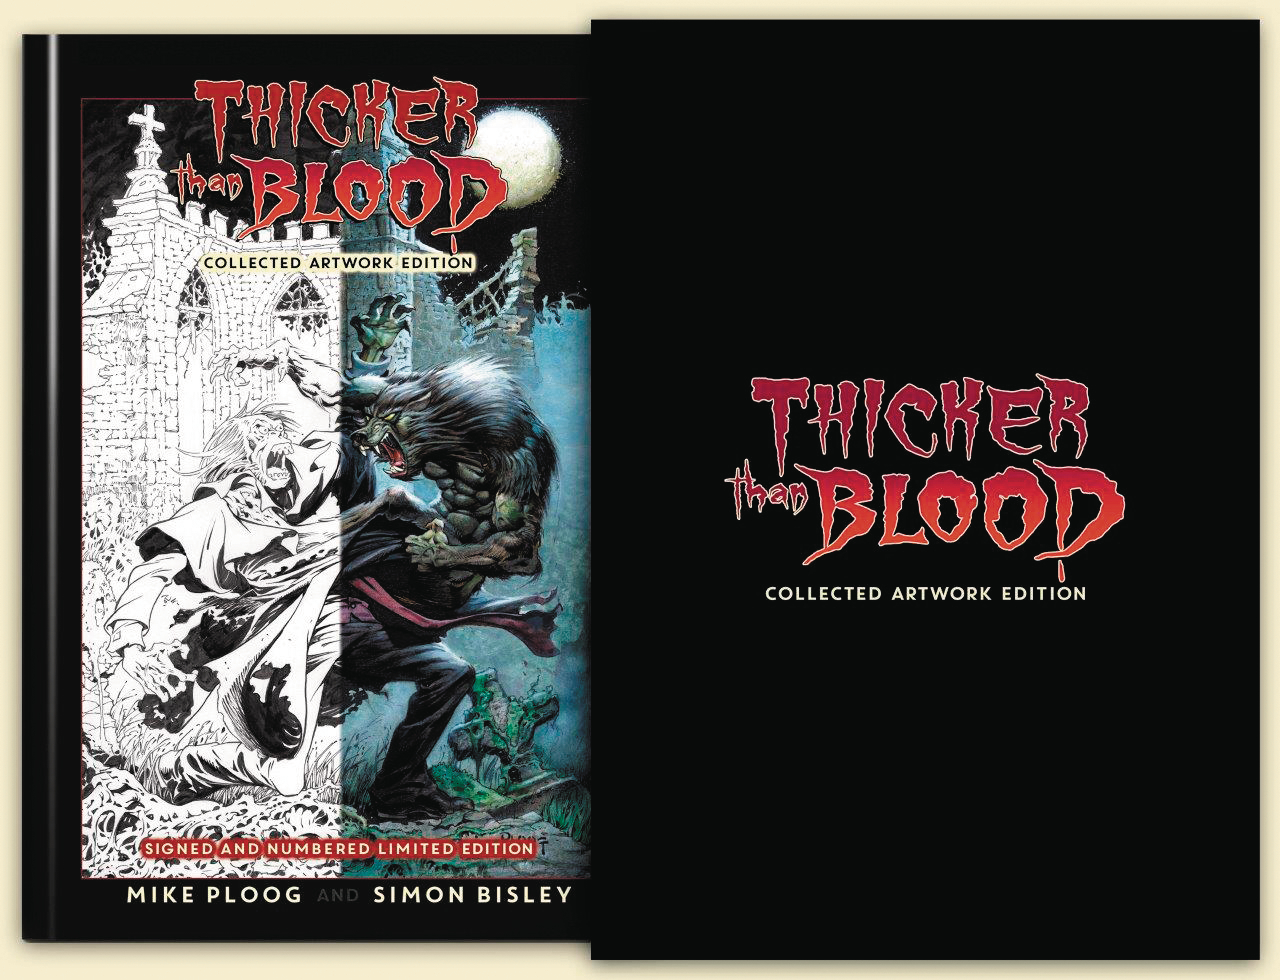 THICKER THAN BLOOD COLLECTED ARTWORK S&N LTD ED